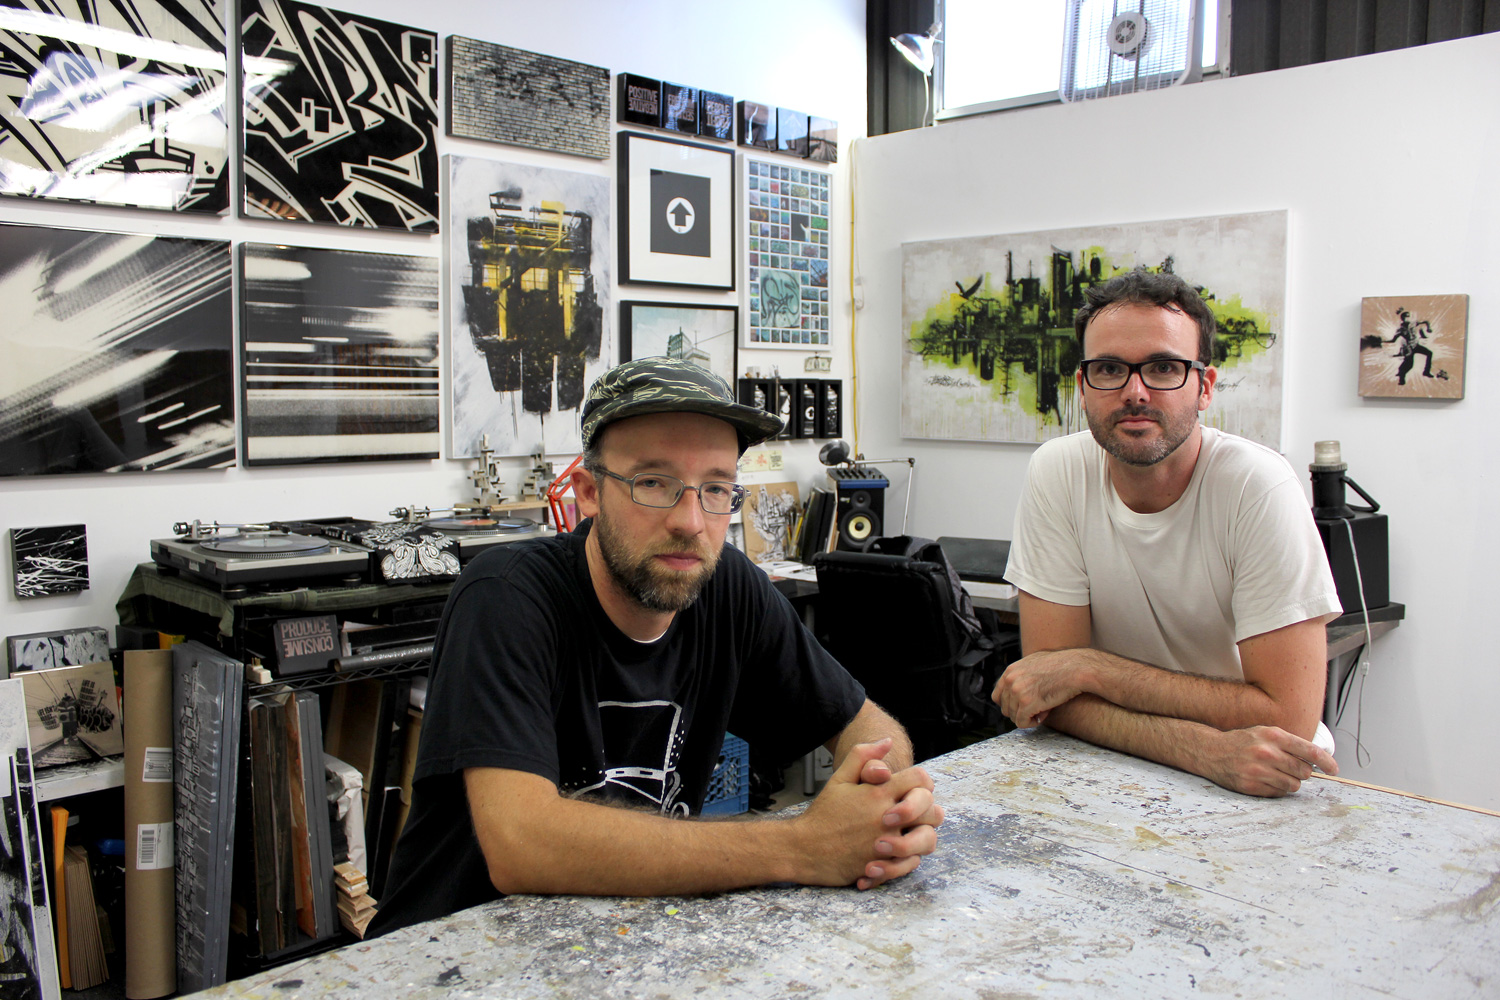 Bisco Smith and Dfalt, friends who met more than 14 years ago in New York, work together in their studio loft above WNDO.